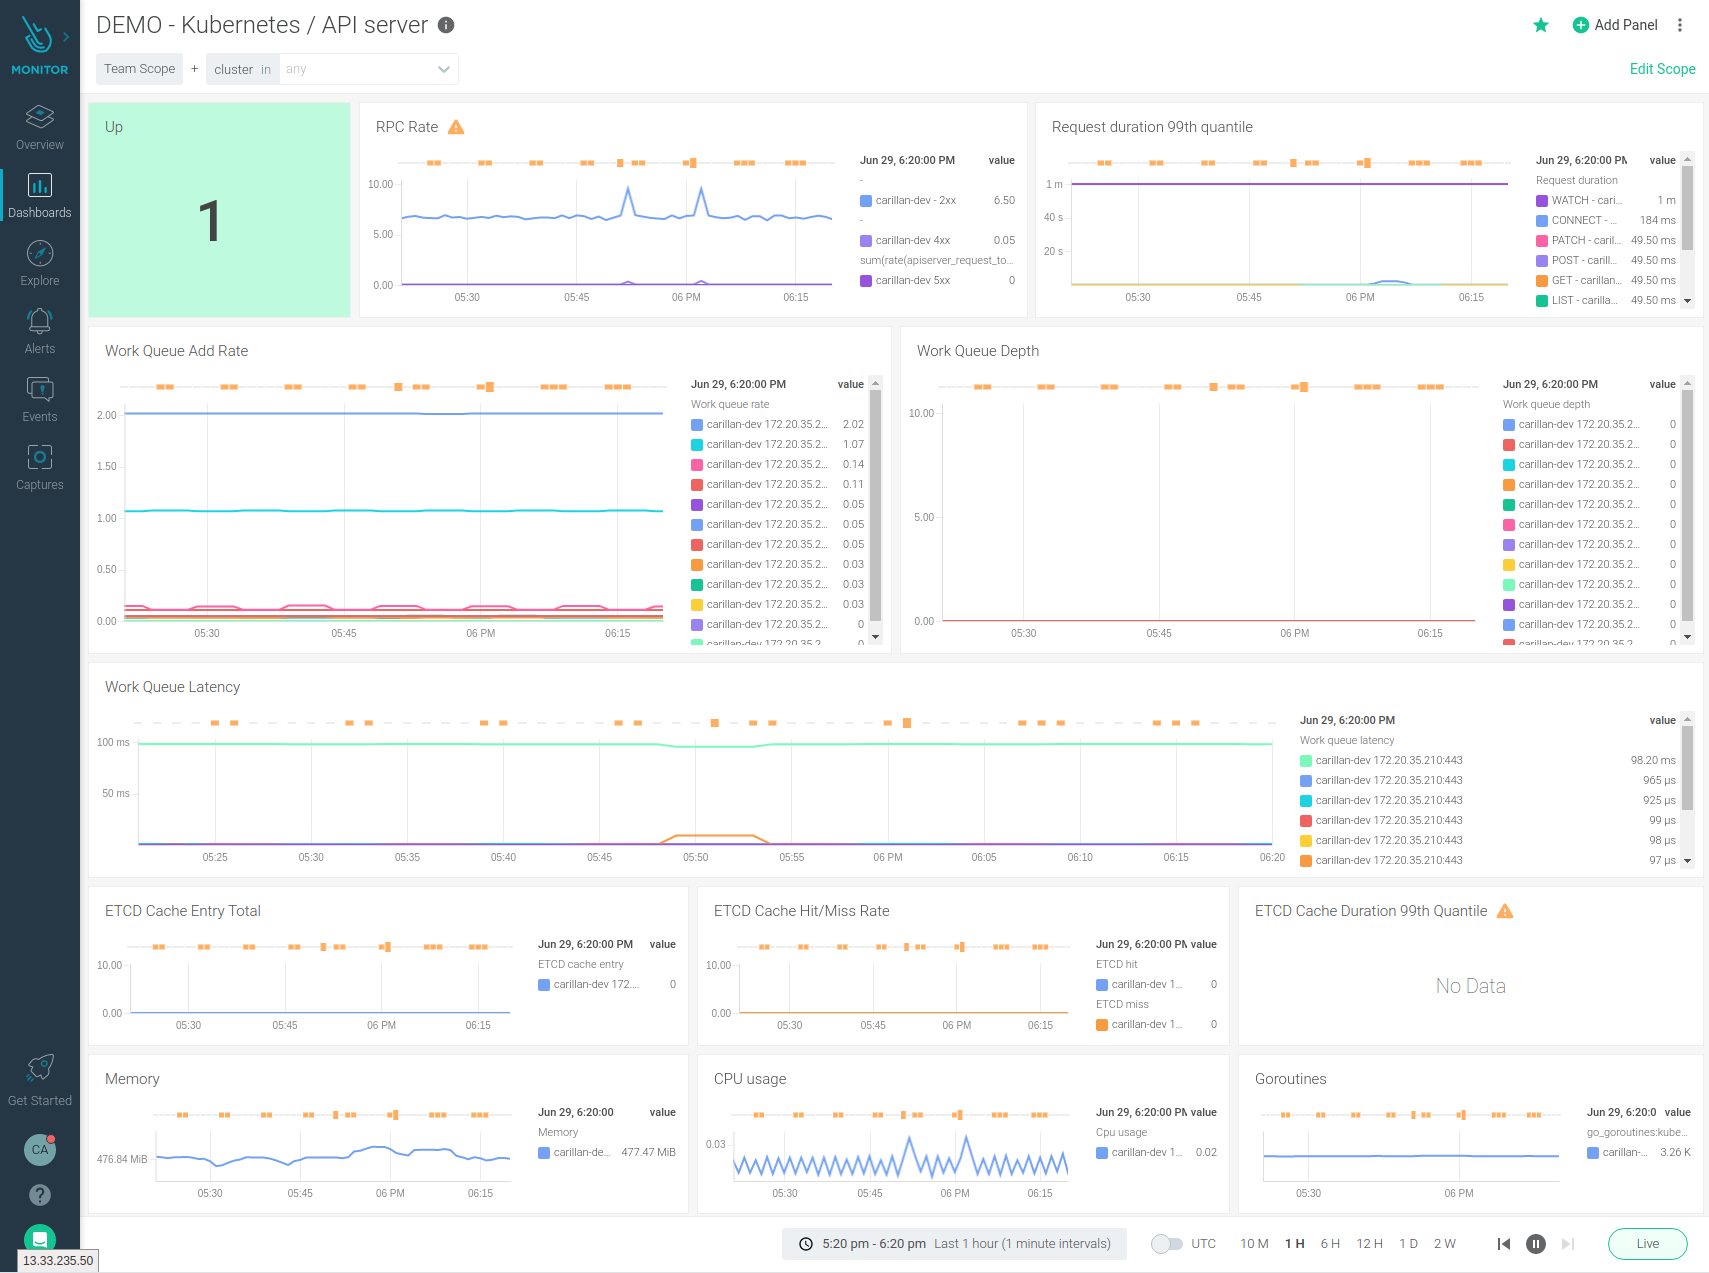 A Kubernetes monitoring dashboard of the API server. It tracks metrics like: Is it up? RPC Rate, Rquest duration, Work Queue add rate, Work Queue Depth, Work Queue Latency and ETCD Cache entry total.